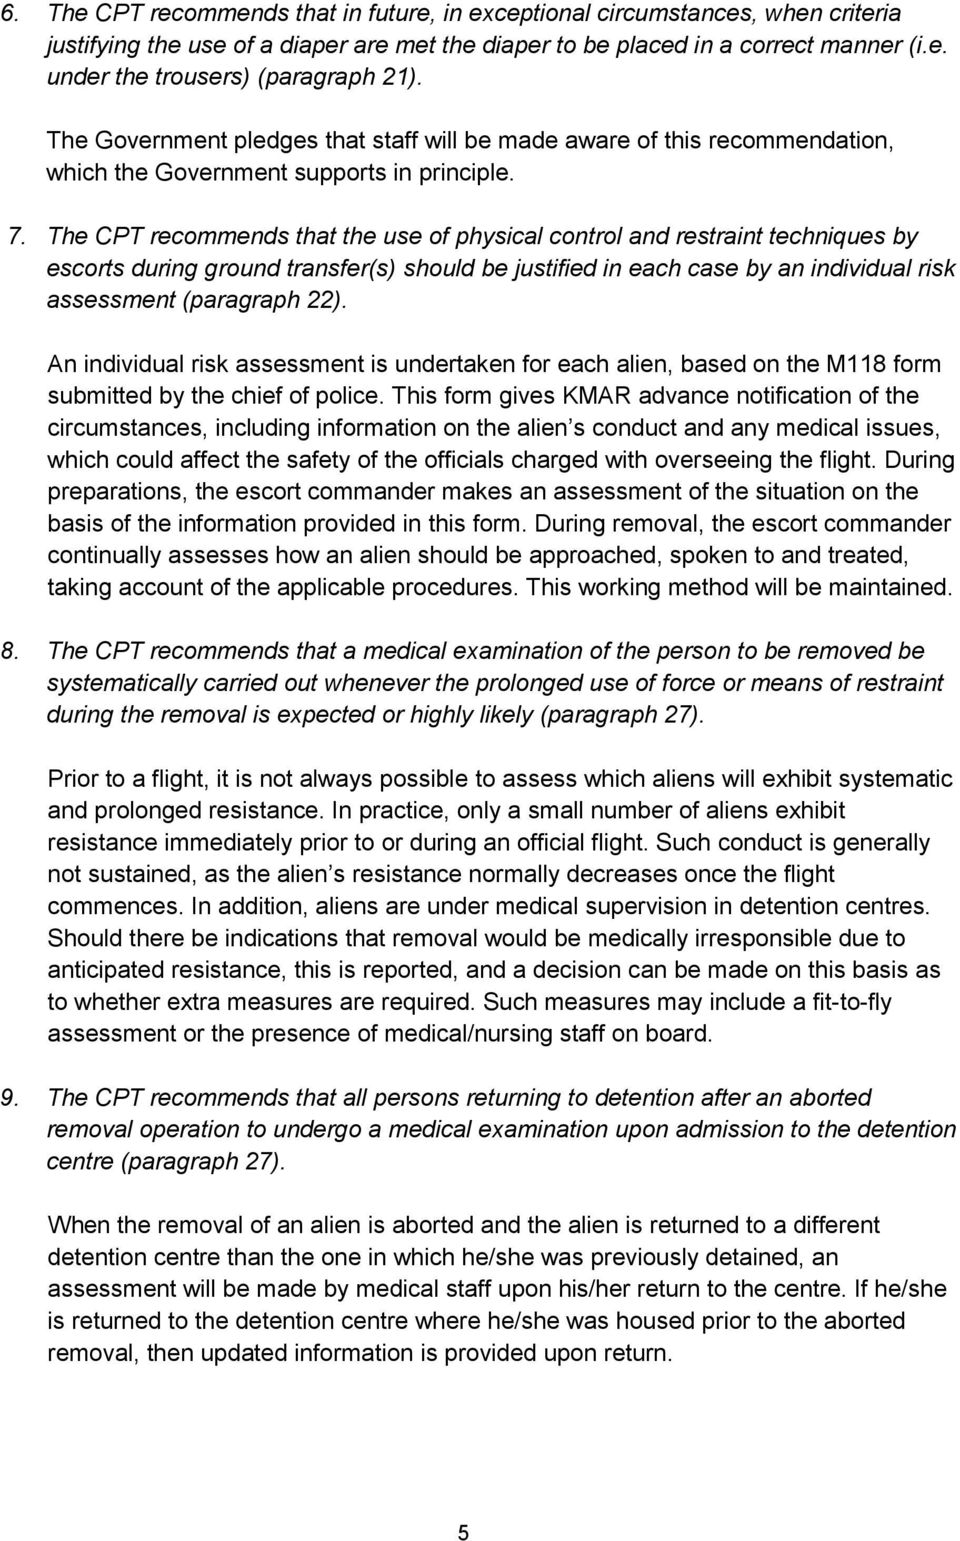 The CPT recommends that the use of physical control and restraint techniques by escorts during ground transfer(s) should be justified in each case by an individual risk assessment (paragraph 22).